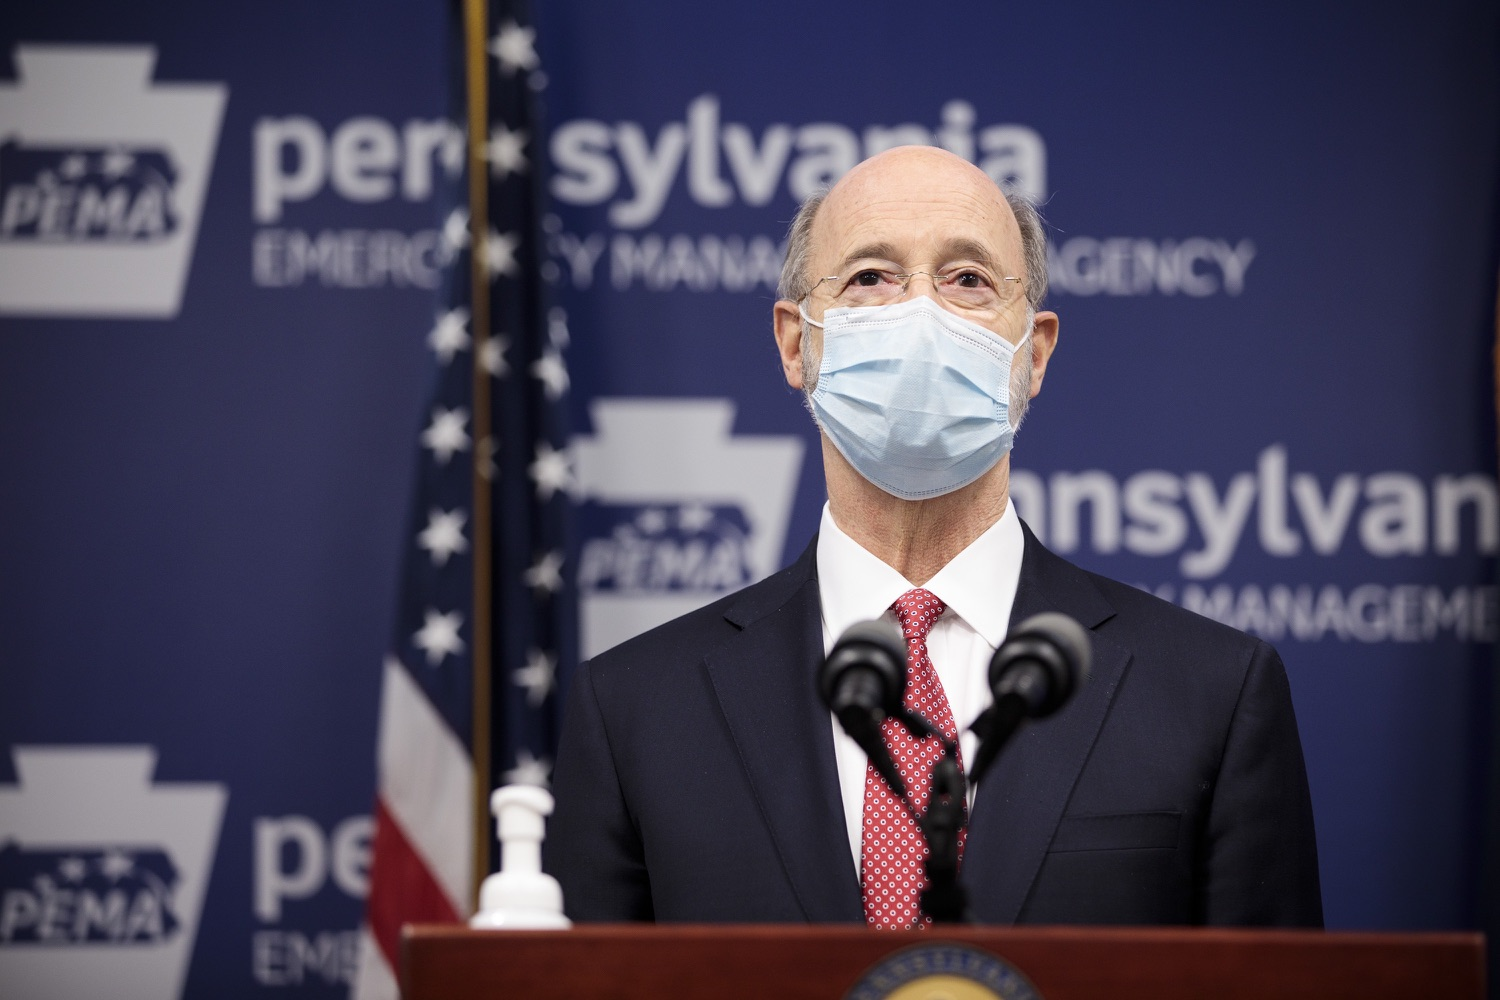 """<a href=""""https://filesource.wostreaming.net/commonwealthofpa/photo/18465_gov_electoralCollege_dz_18.jpg"""" target=""""_blank"""">⇣Download Photo<br></a>Pennsylvania Governor Tom Wolf speaking at the press conference.  With Congress preparing to count Electoral College votes today, Governor Tom Wolf was joined by Secretary of State Kathy Boockvar and Philadelphia City Commissioner Al Schmidt to emphasize that Pennsylvania had a free, fair and secure election. All efforts by Congressional Republicans to overthrow the election results and subvert the will of the voters are disgraceful and must be rejected. Harrisburg, PA  January 6, 2021"""